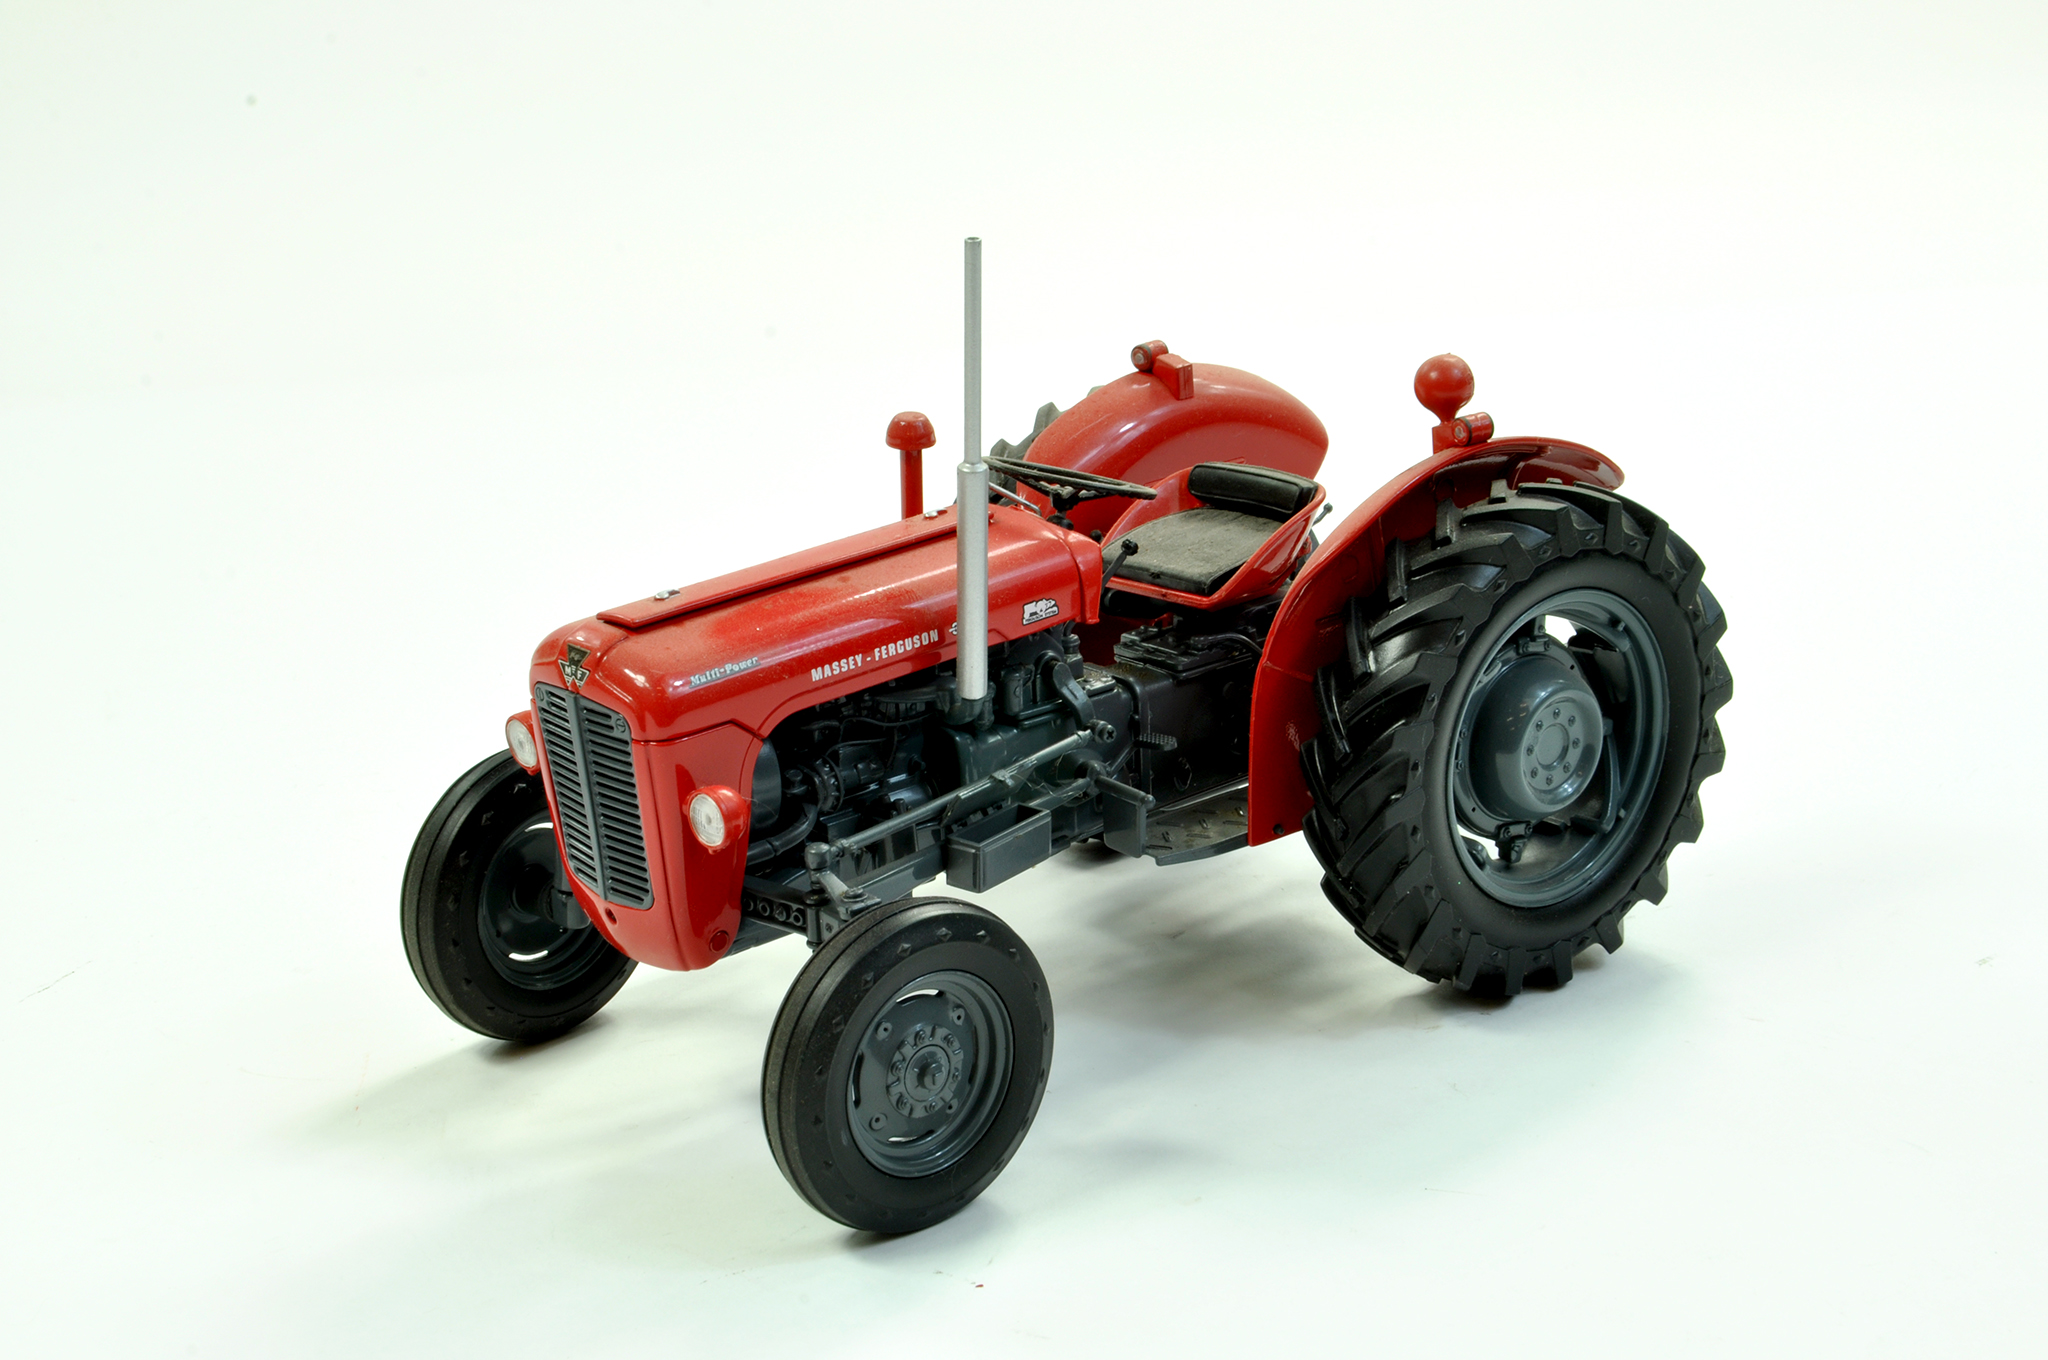 Lot 42 - Universal Hobbies 1/16 diecast farm issue comprising Massey Ferguson 35X Tractor. A little dusty but